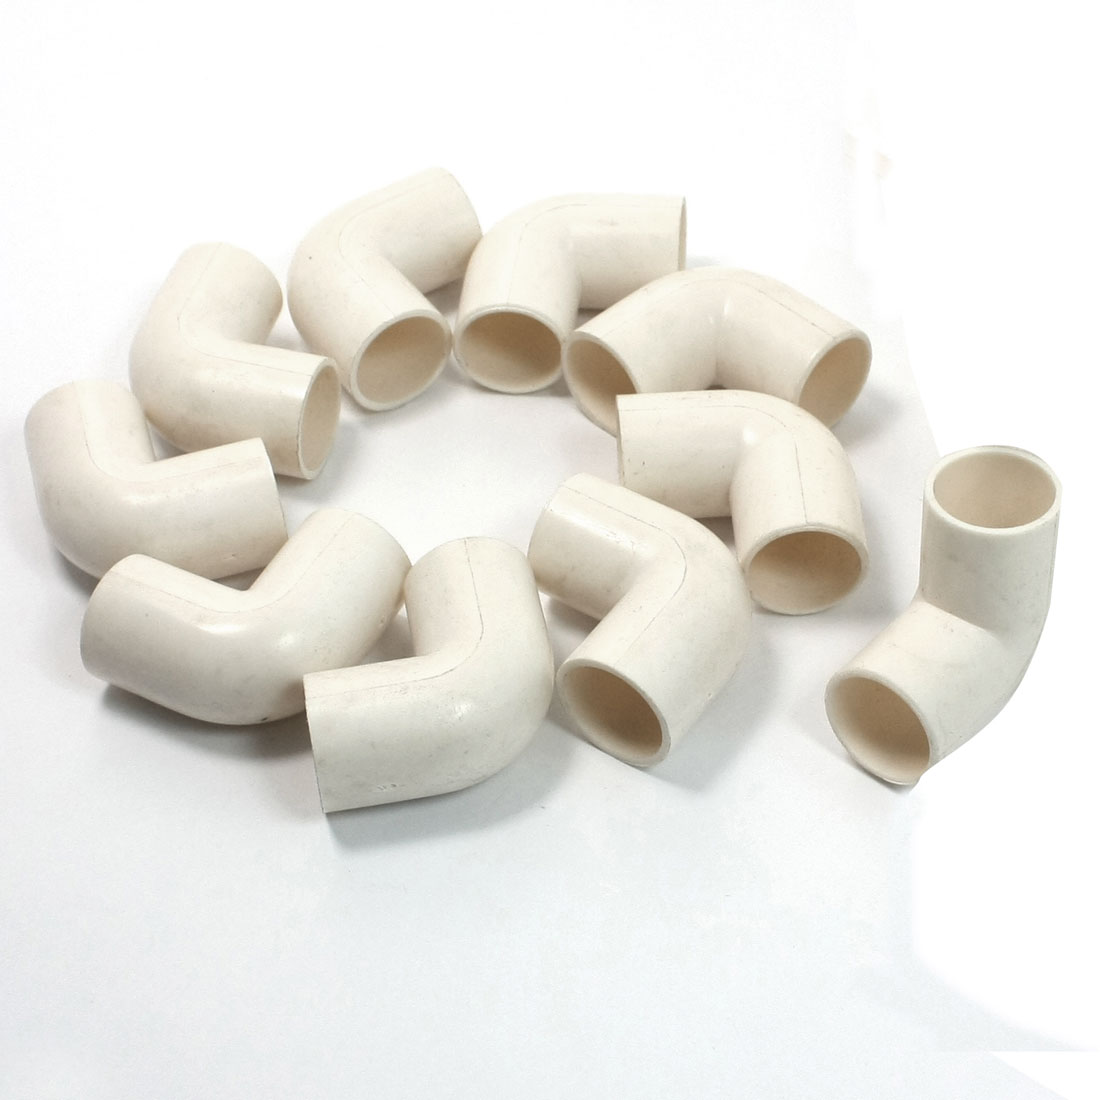 10 Pcs 16mm Inner DiaMmeter 90 Degree Elbow PVC Pipe Connectors White